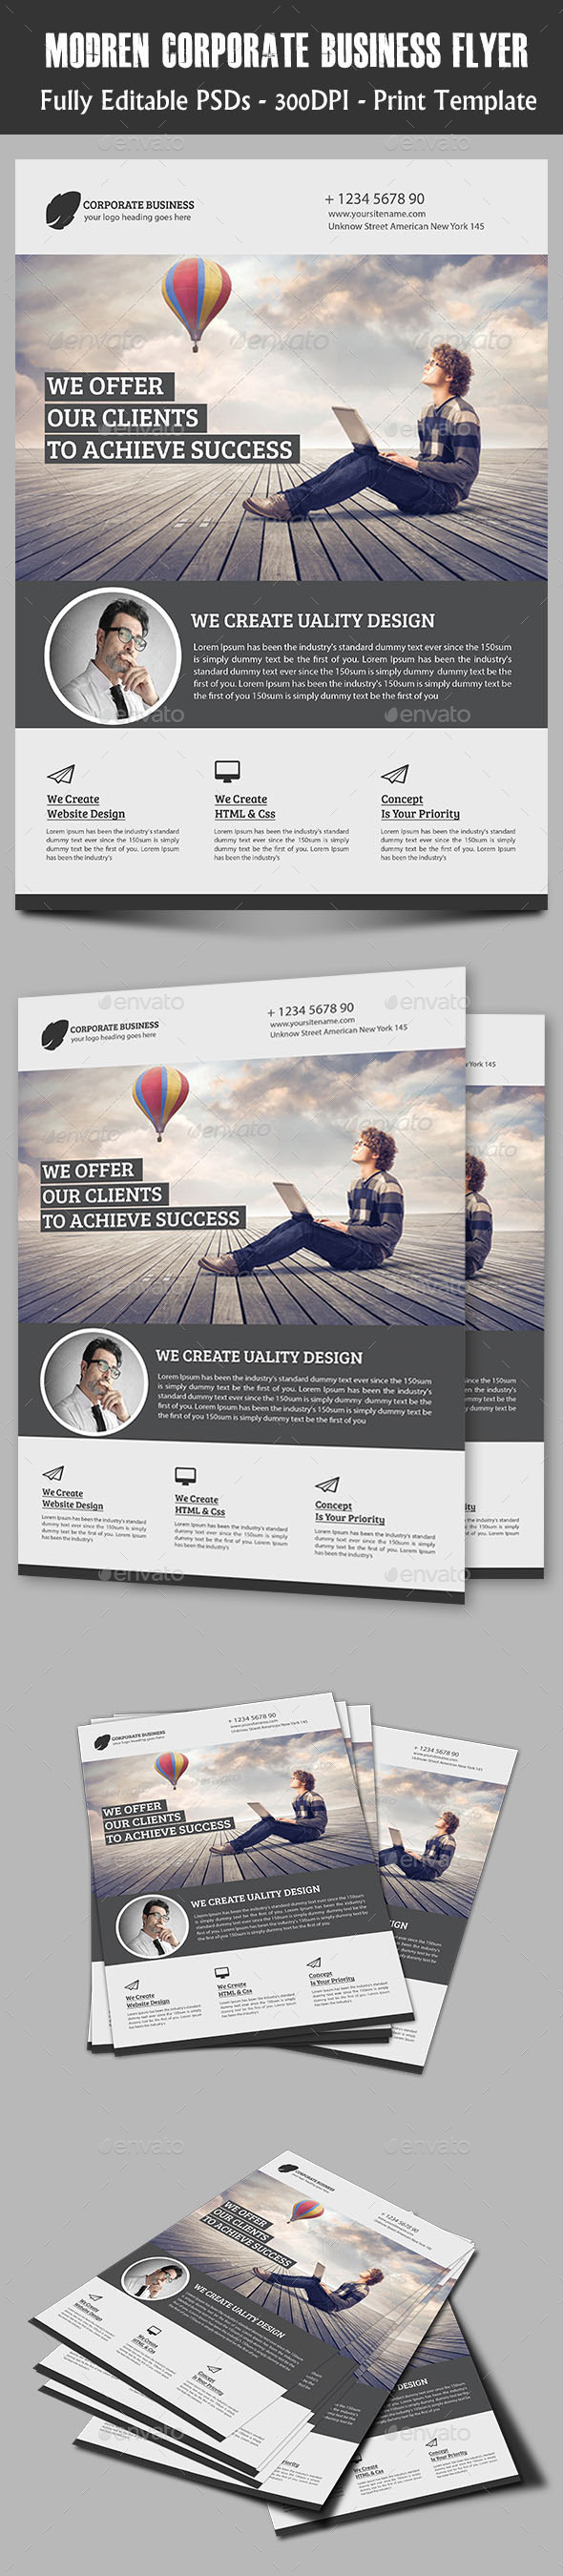 Modern Corporate Flyer - Flyers Print Templates